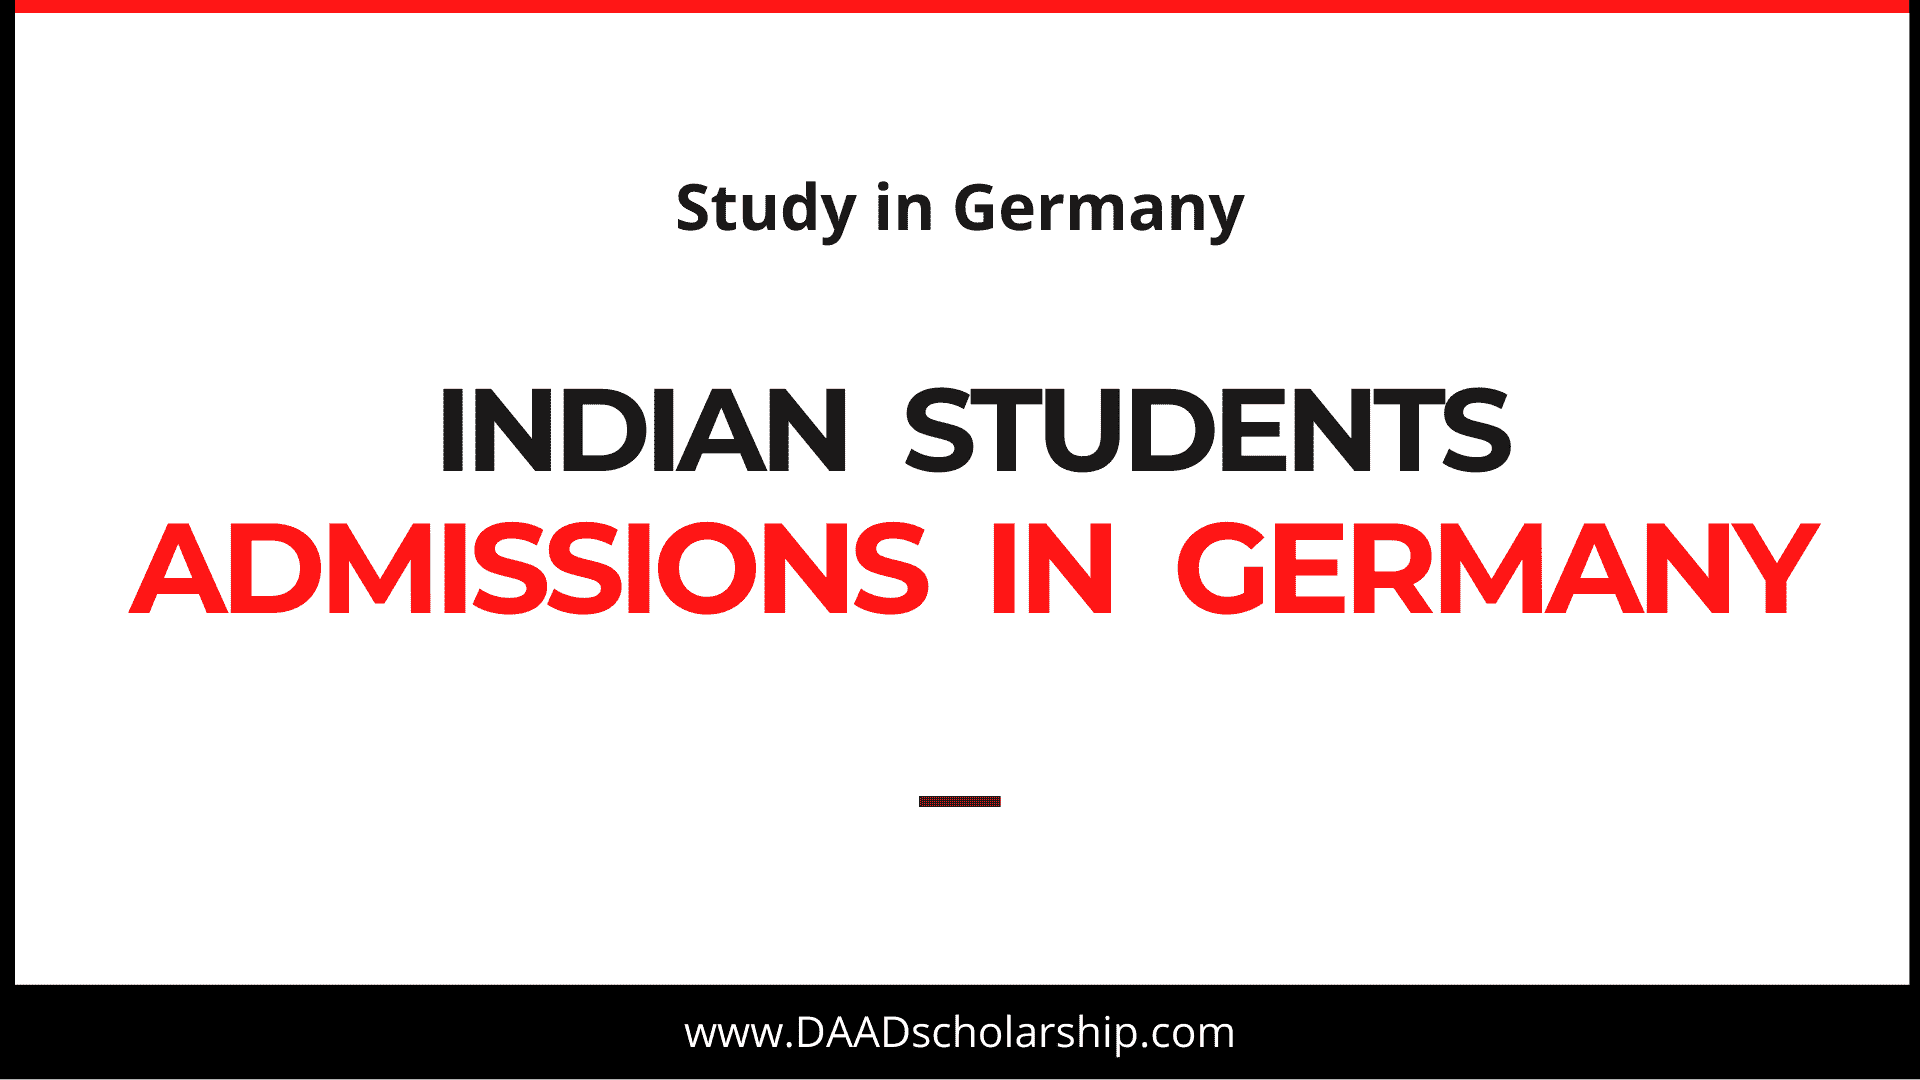 Indian Students Personalized Guide to Study in Germany Study Requirements in Germany for Indian Students